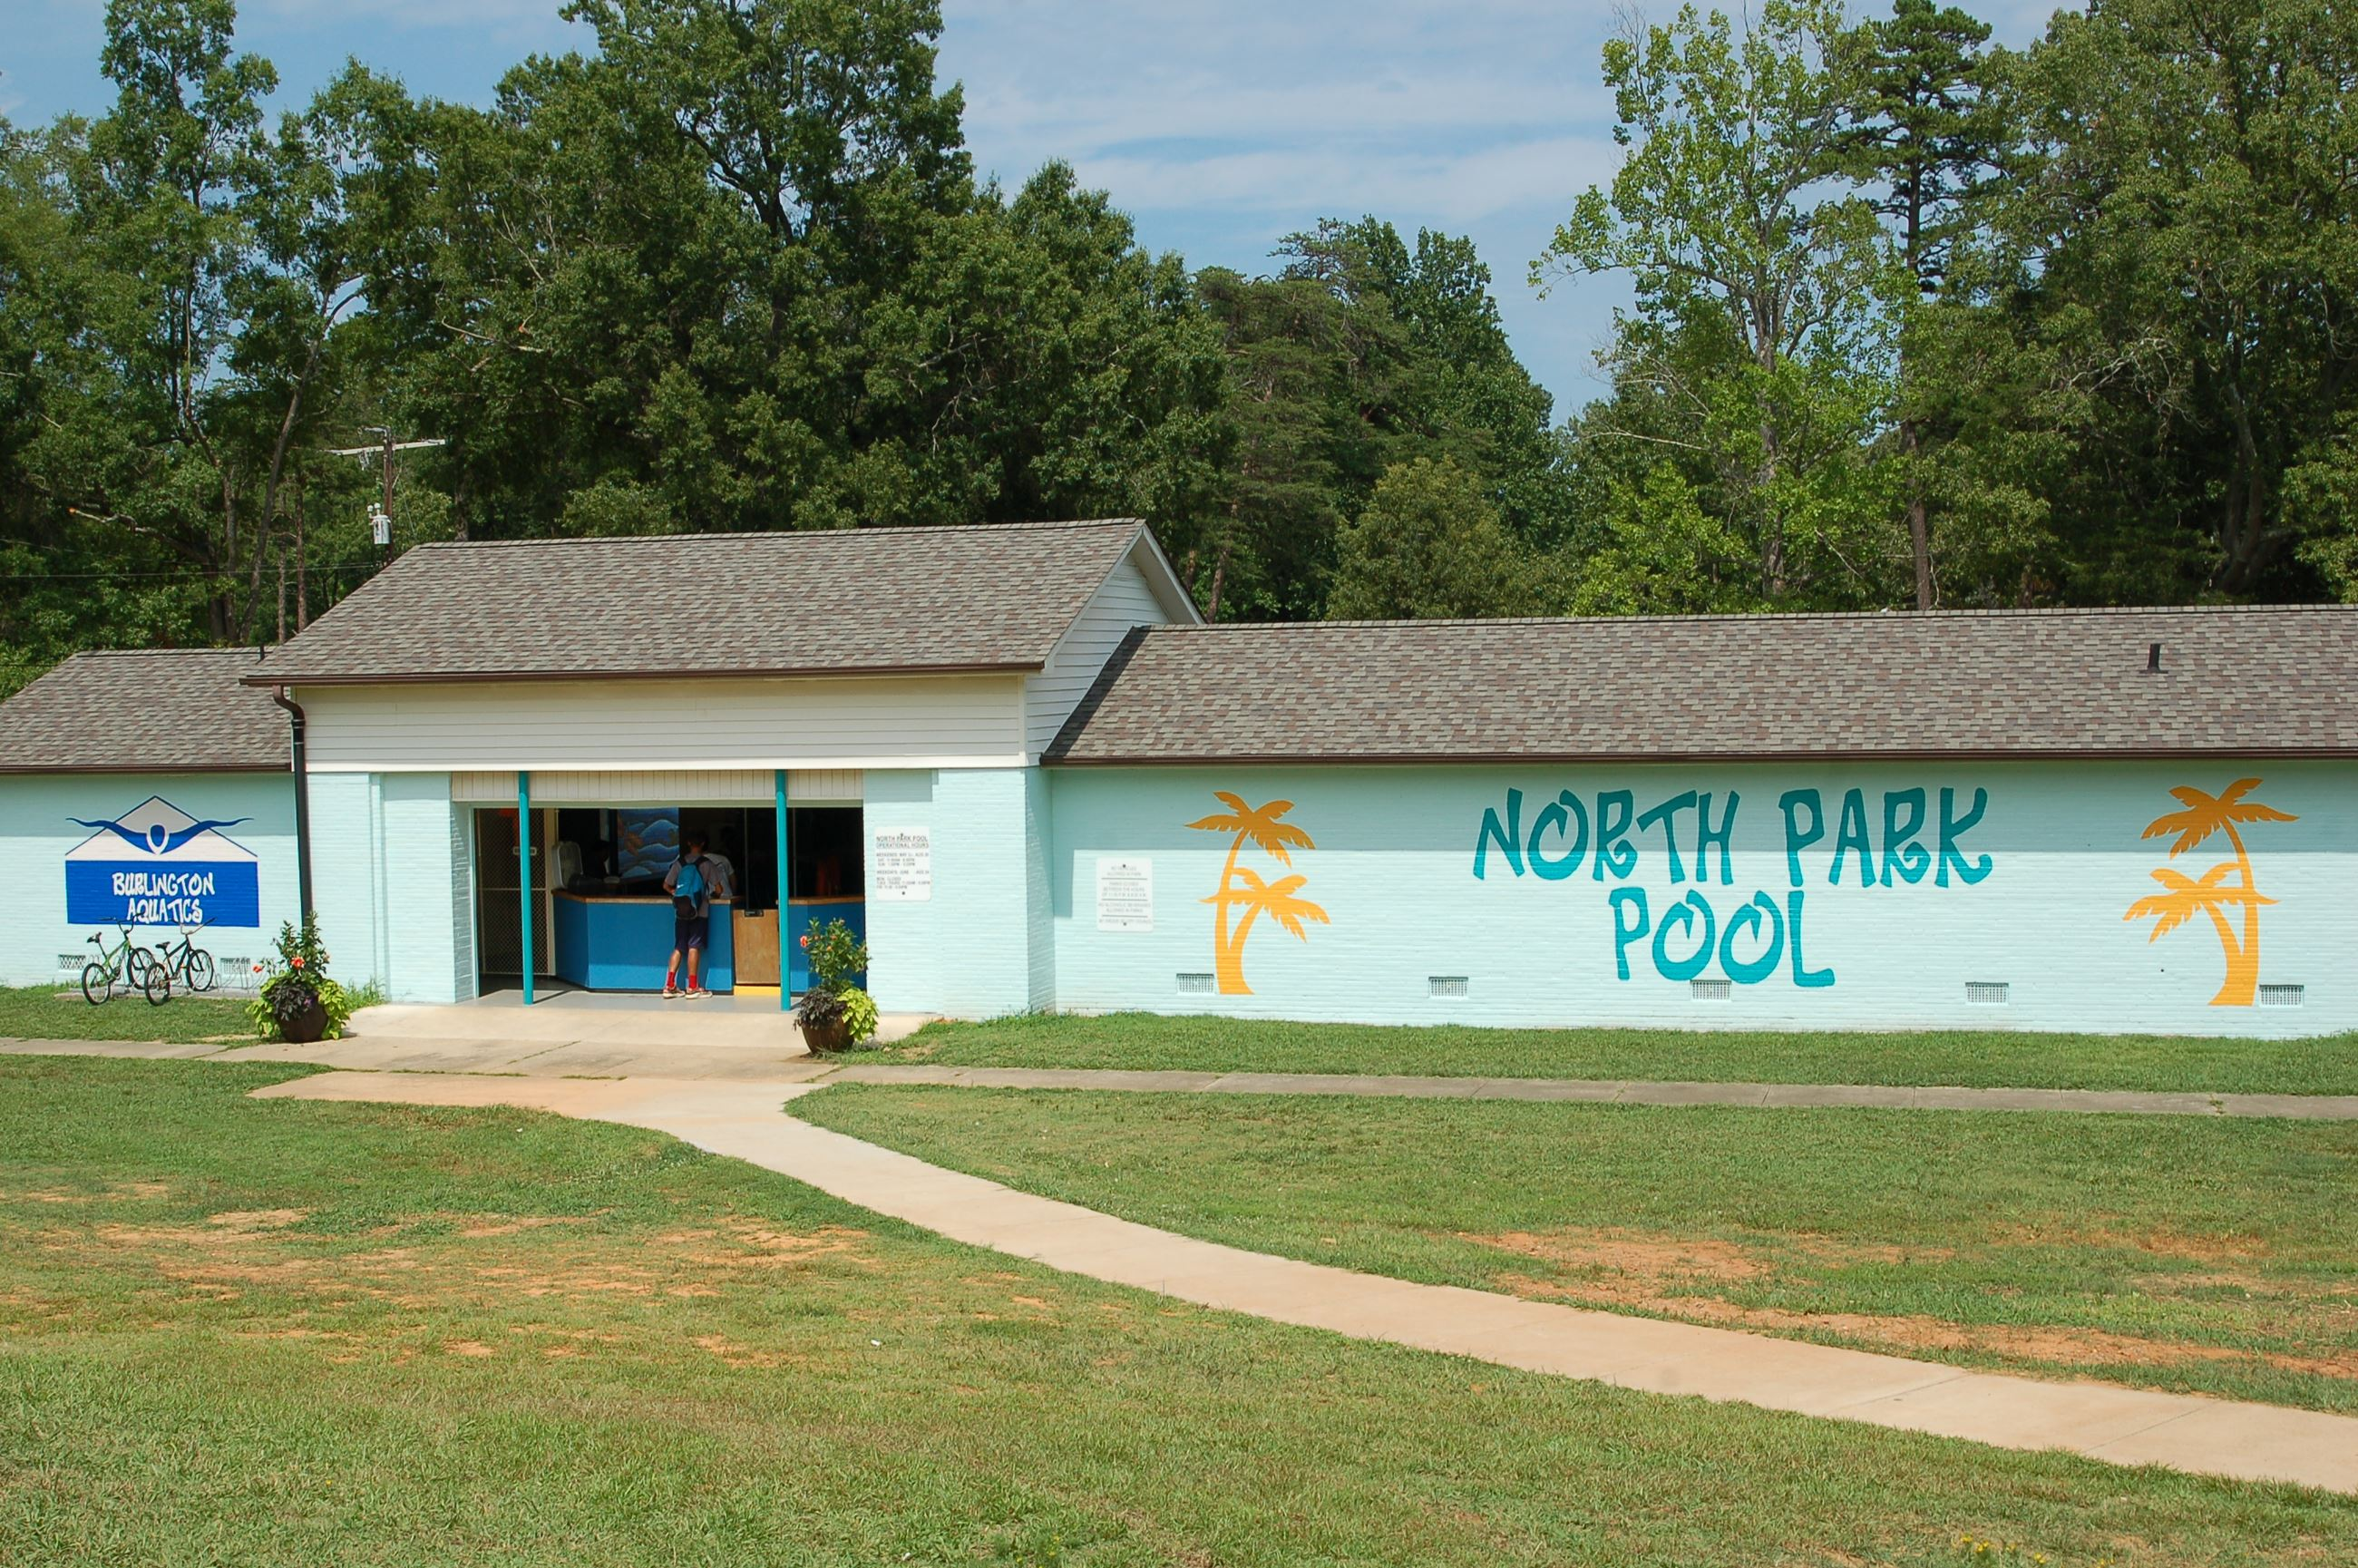 North Park Pool